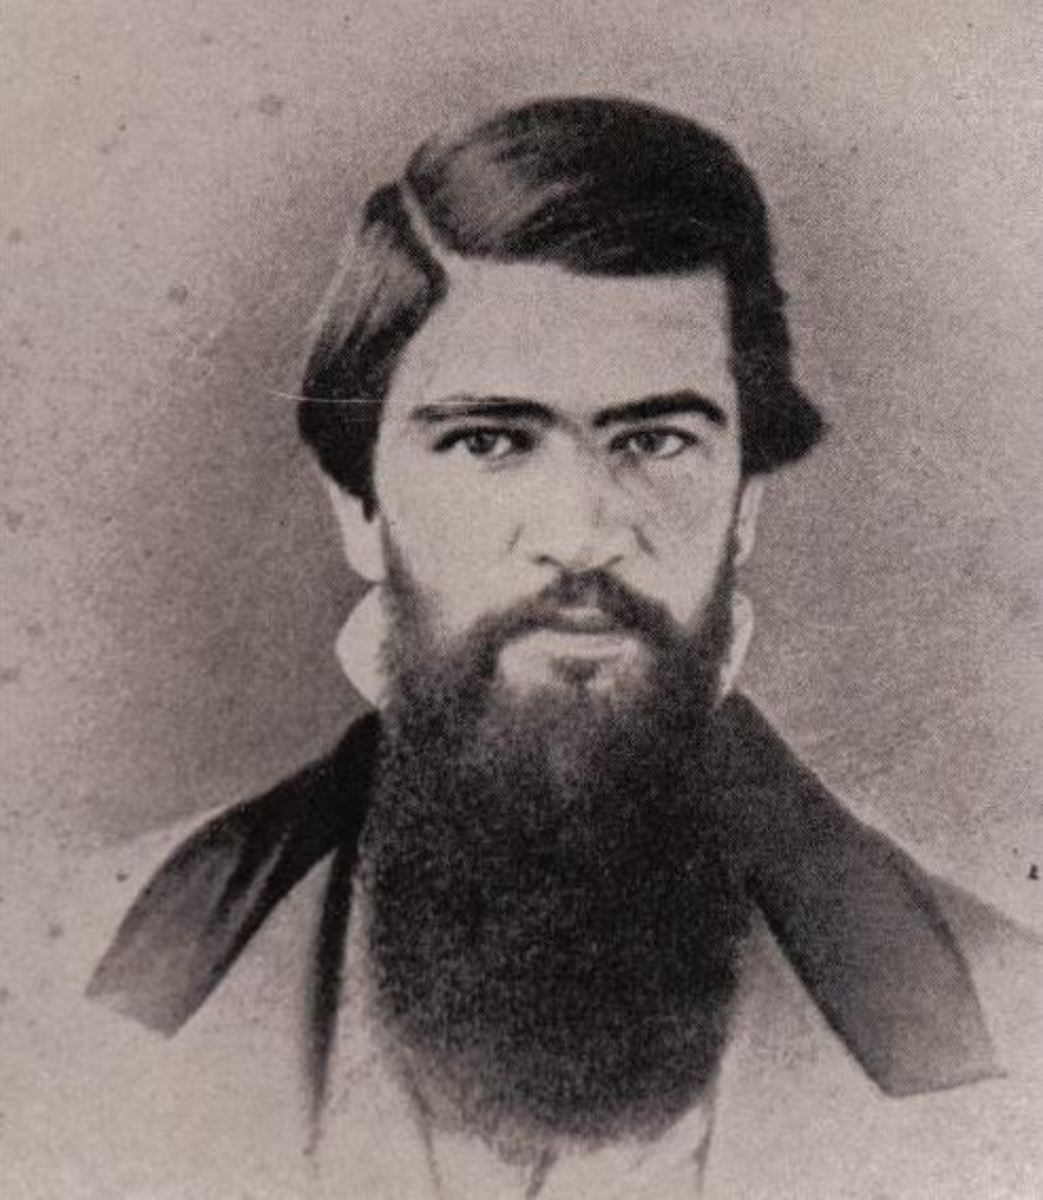 Colonel Turner Ashby